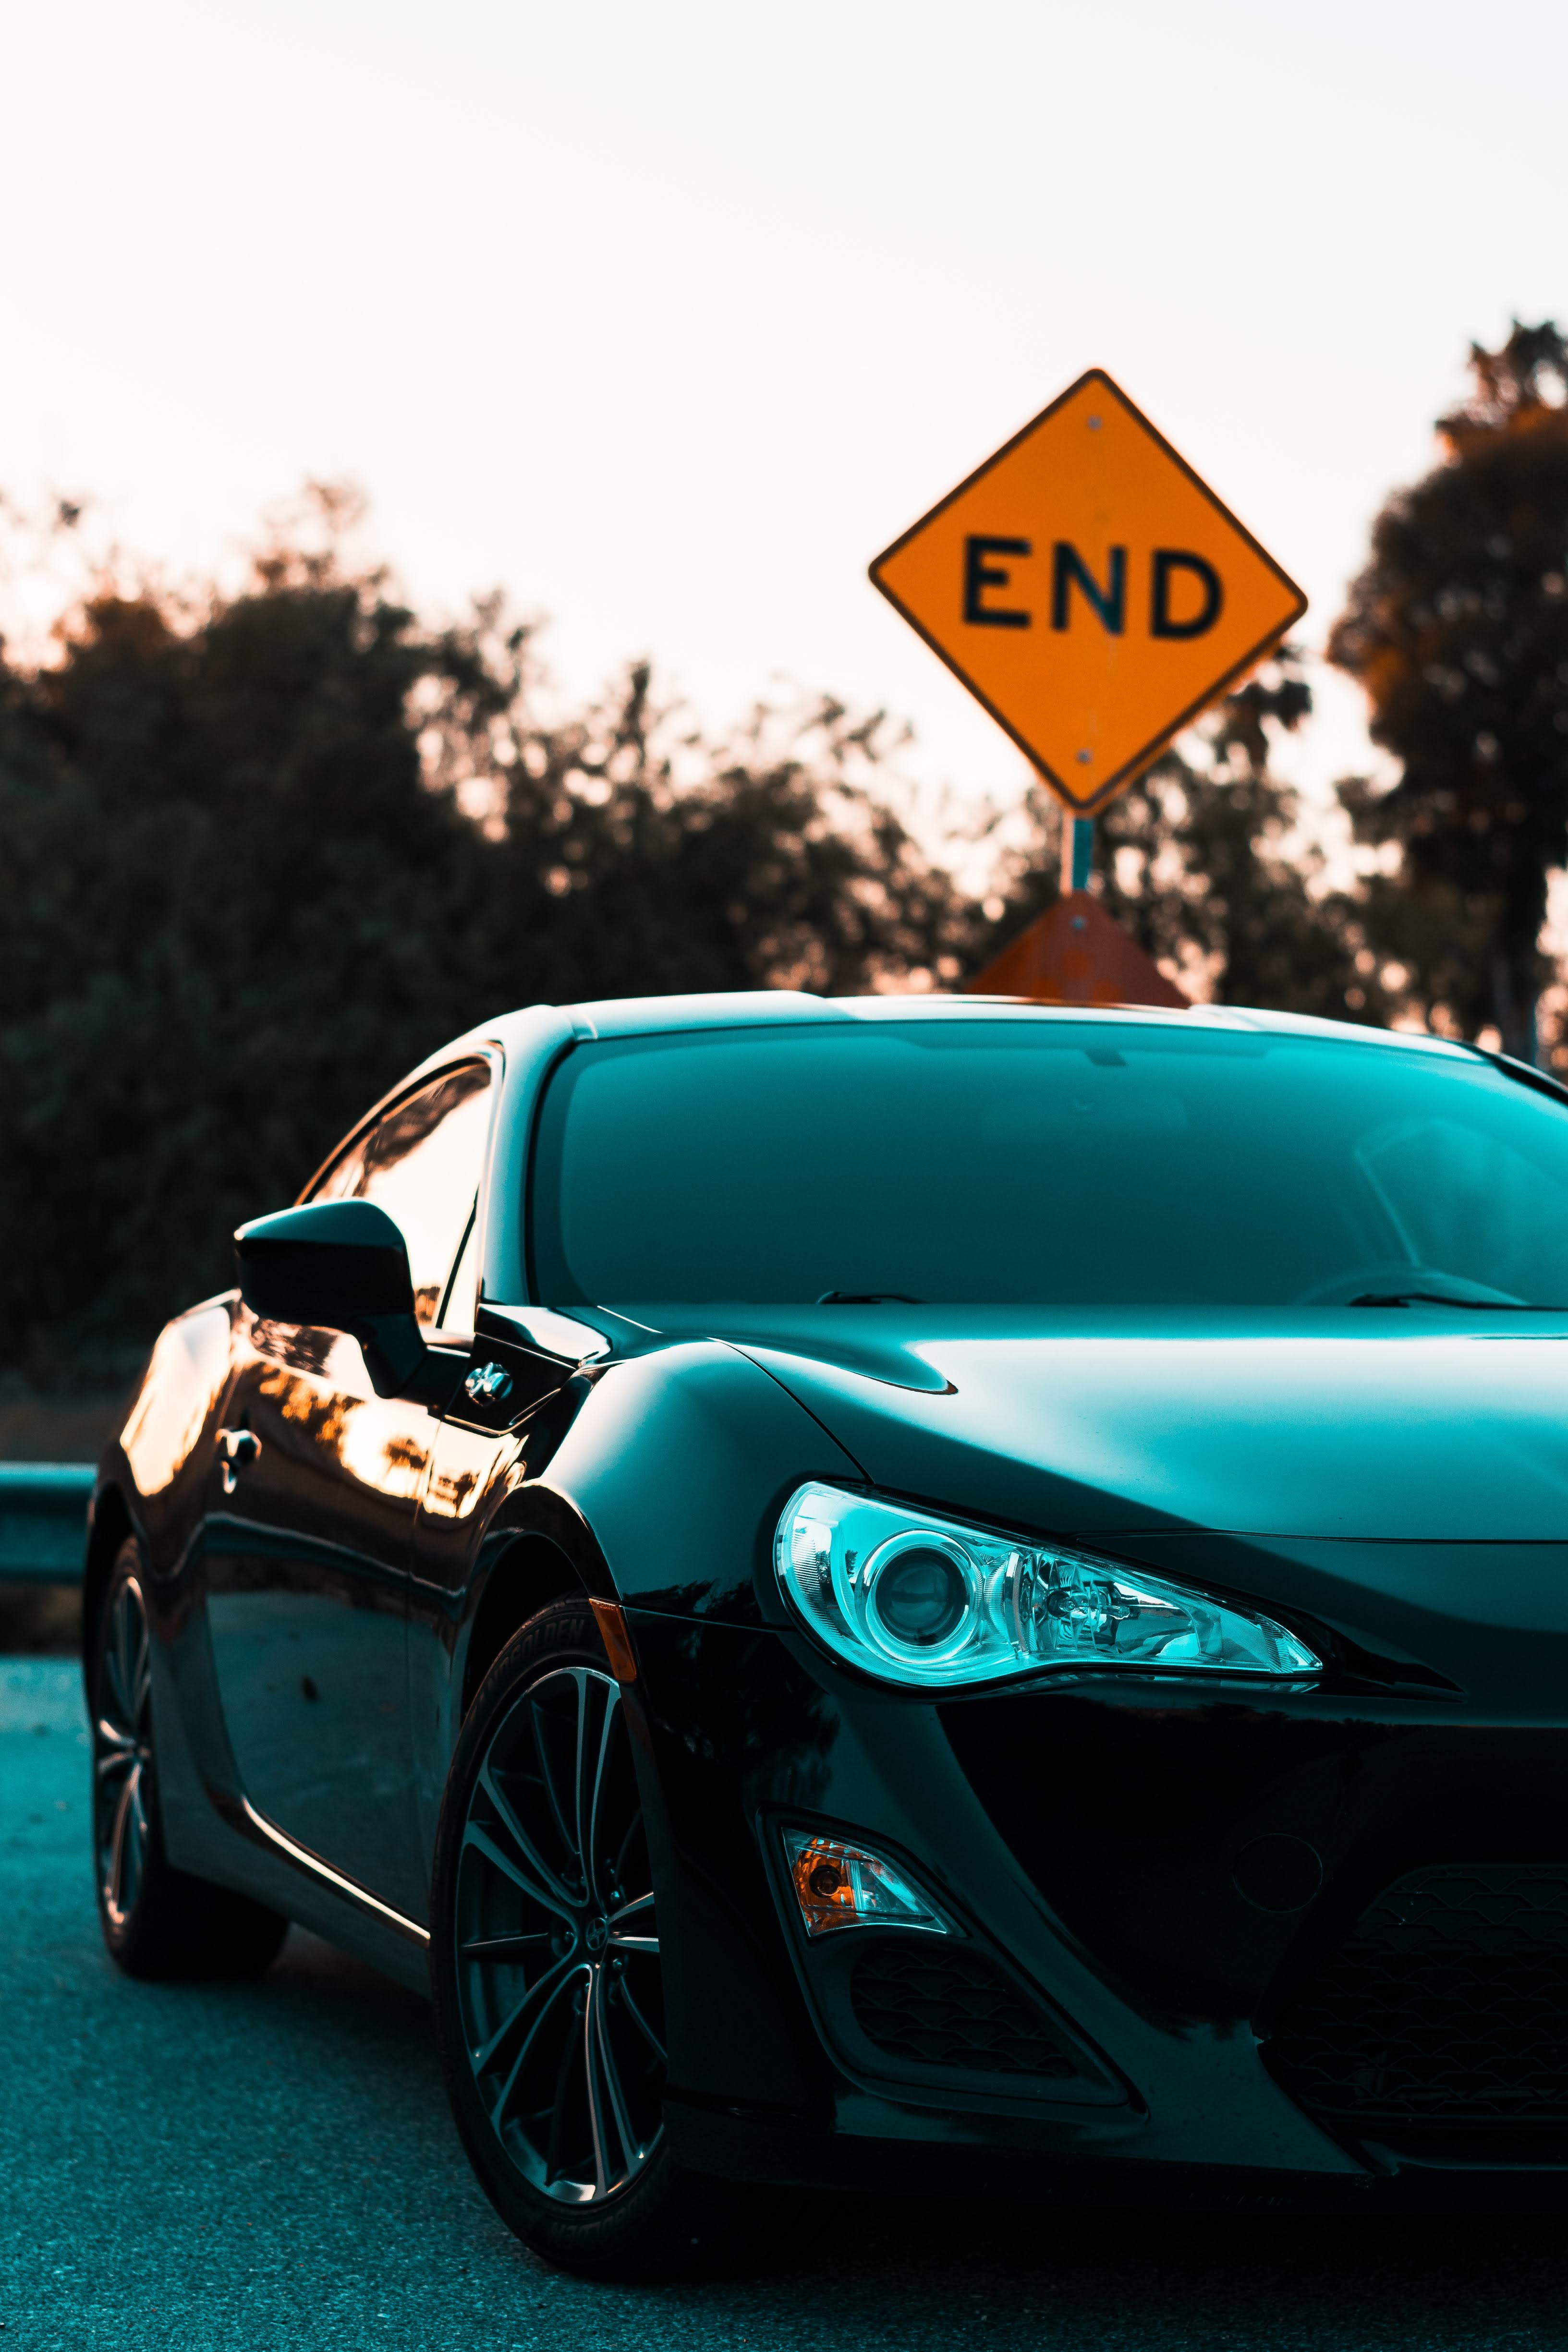 154431 free wallpaper 2160x3840 for phone, download images Supercar, Cars, Headlight, Scion 2160x3840 for mobile